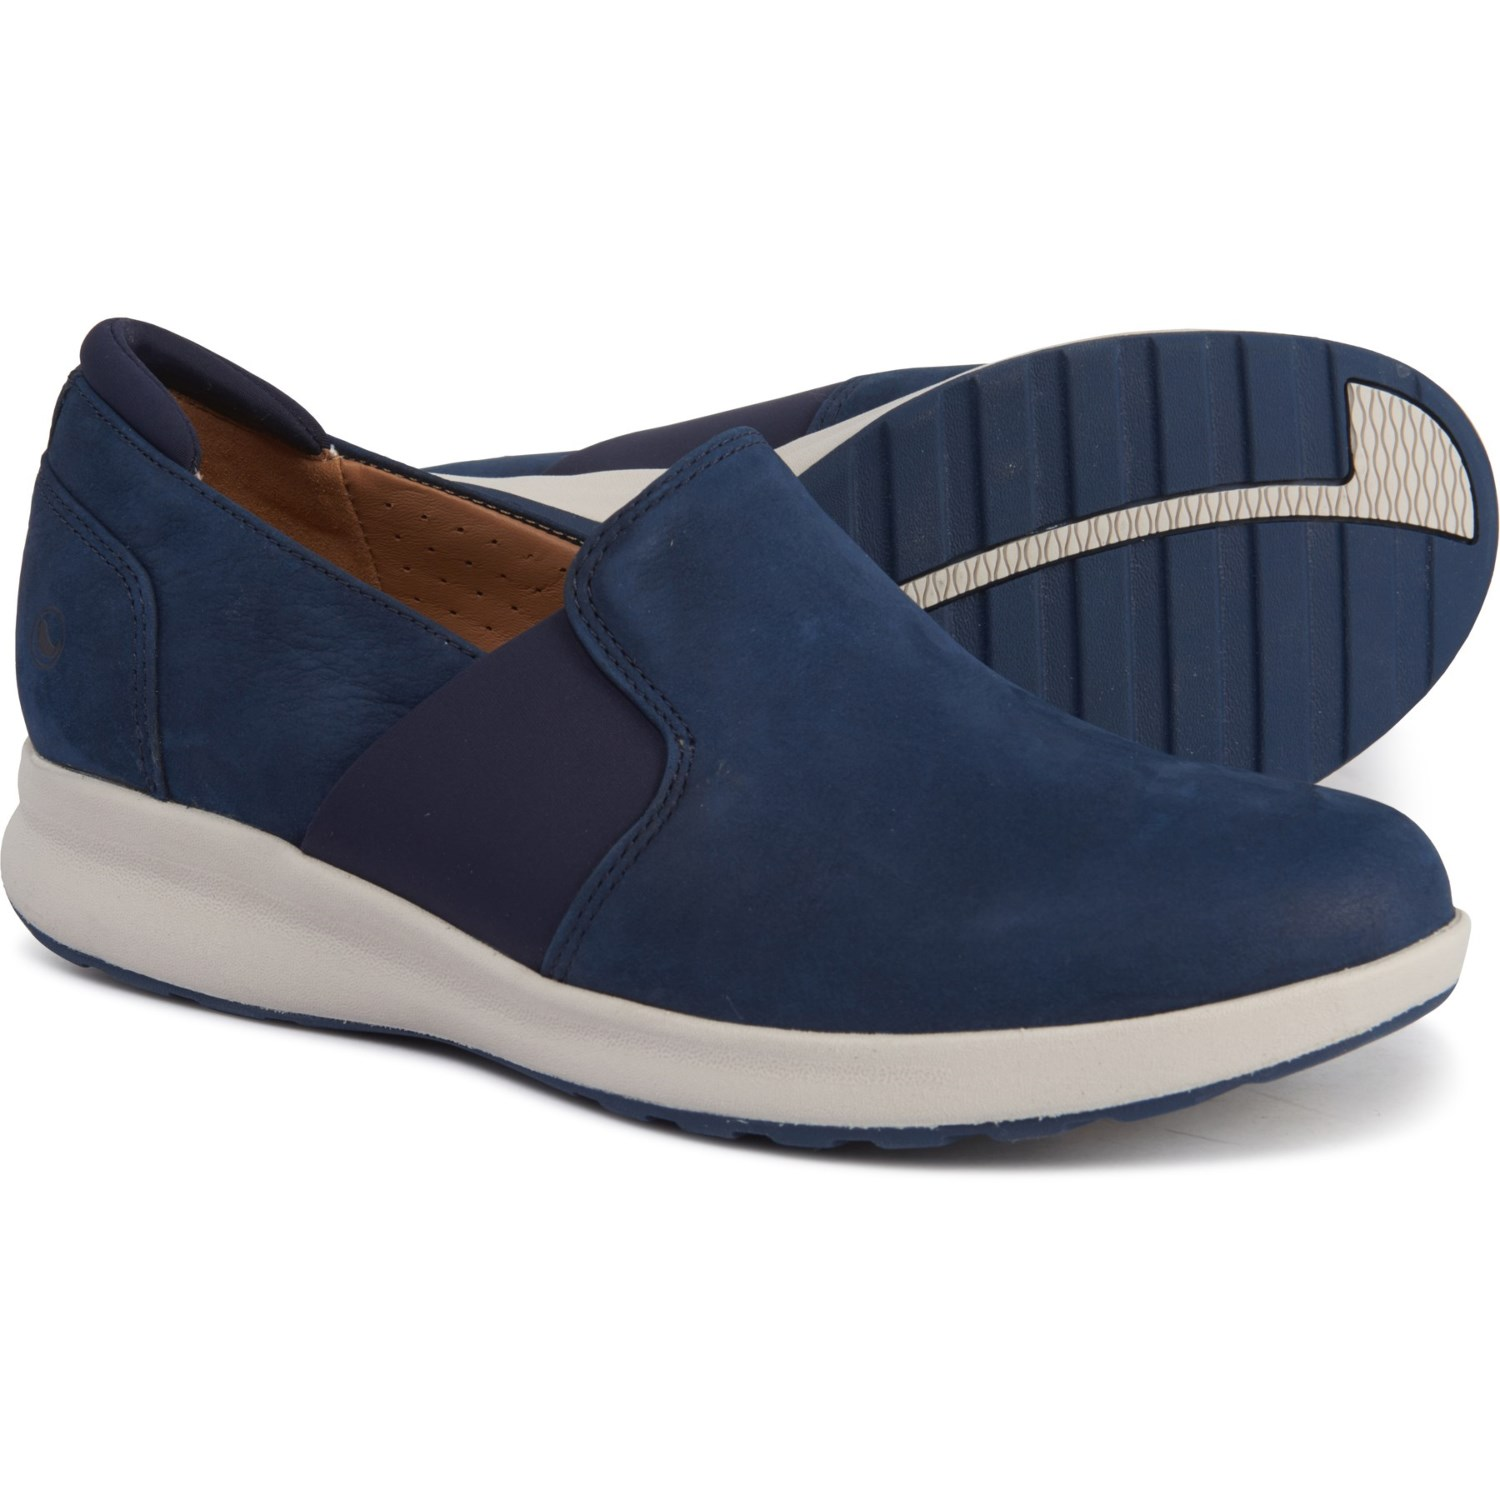 Clarks Un Adorn Step Shoes Leather (For Women)